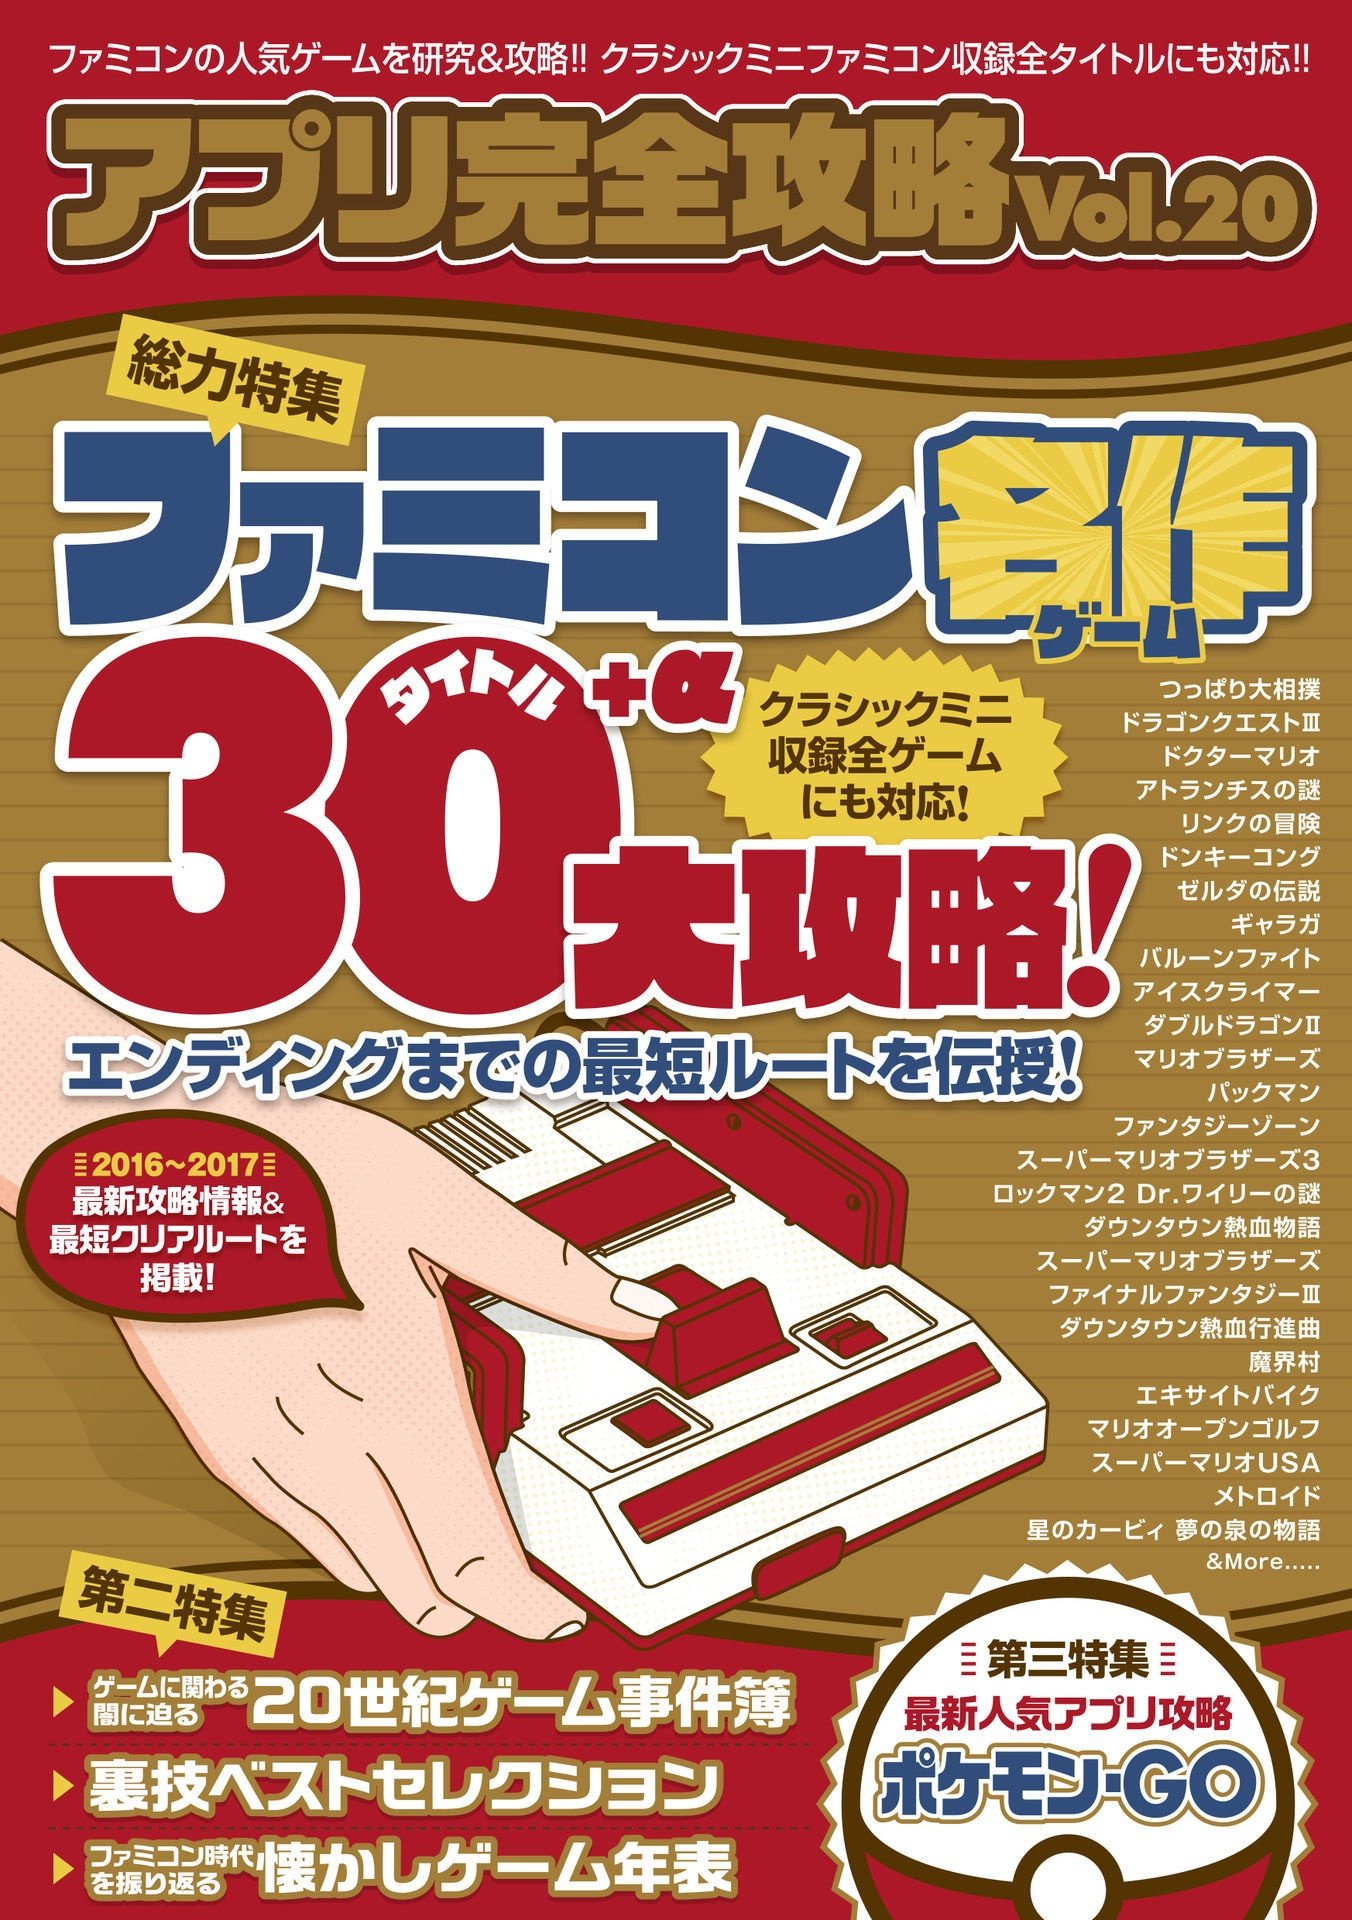 Famicom Masterpiece Game 30-Title Big Strategy (Appli Complete Strategy Vol.20)